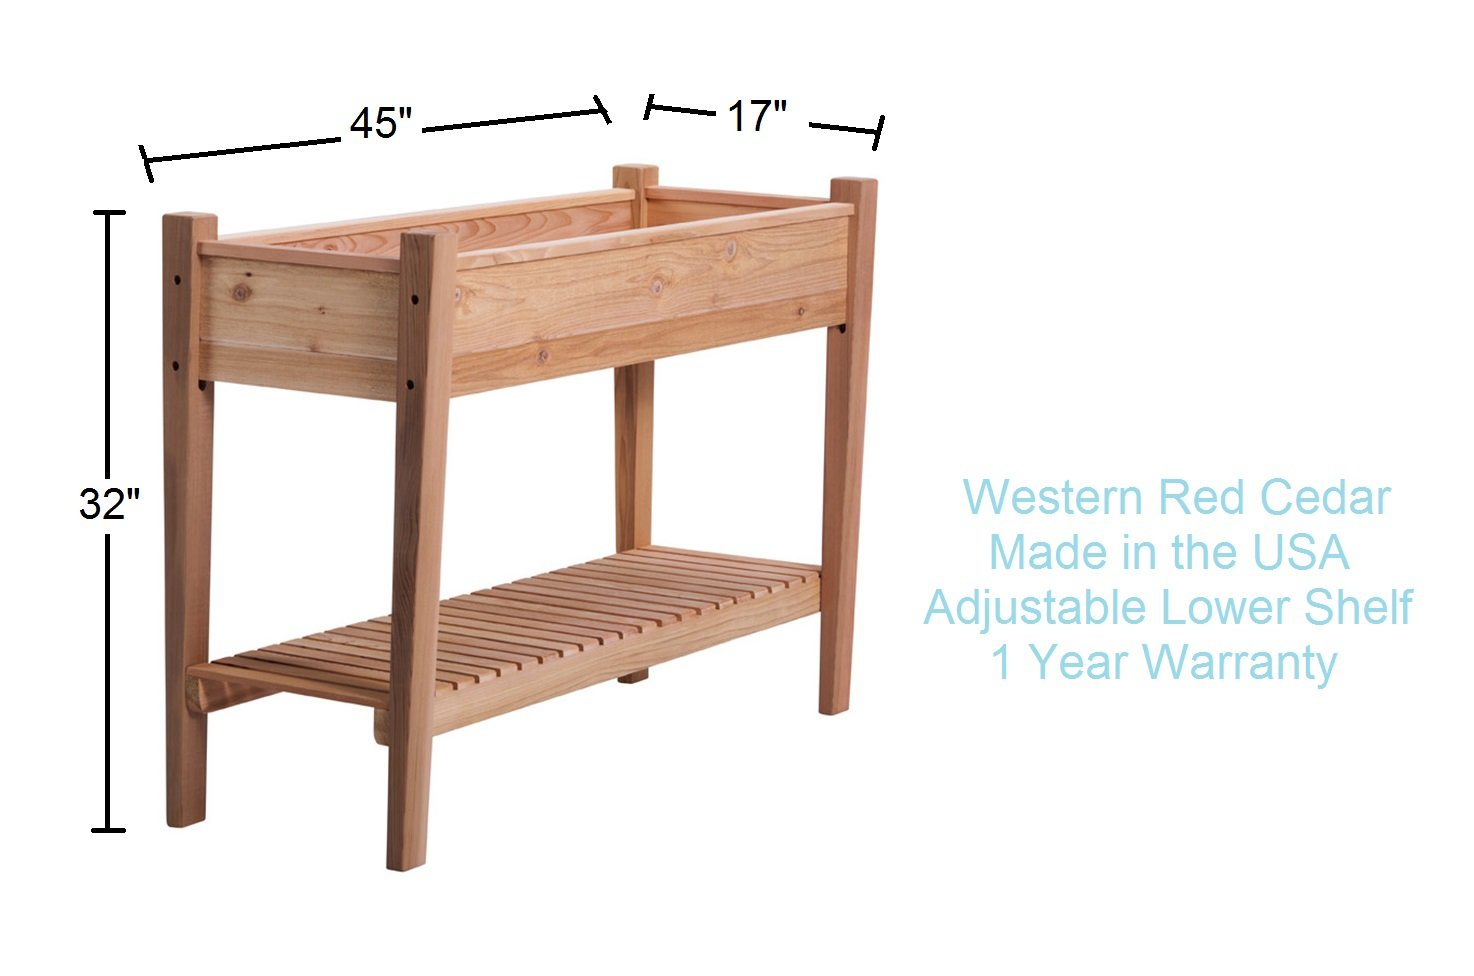 Phat Tommy Patio & Garden Elevated Cedar Planter Box – For Backyard & Outdoor Living, Made in the USA by Phat Tommy